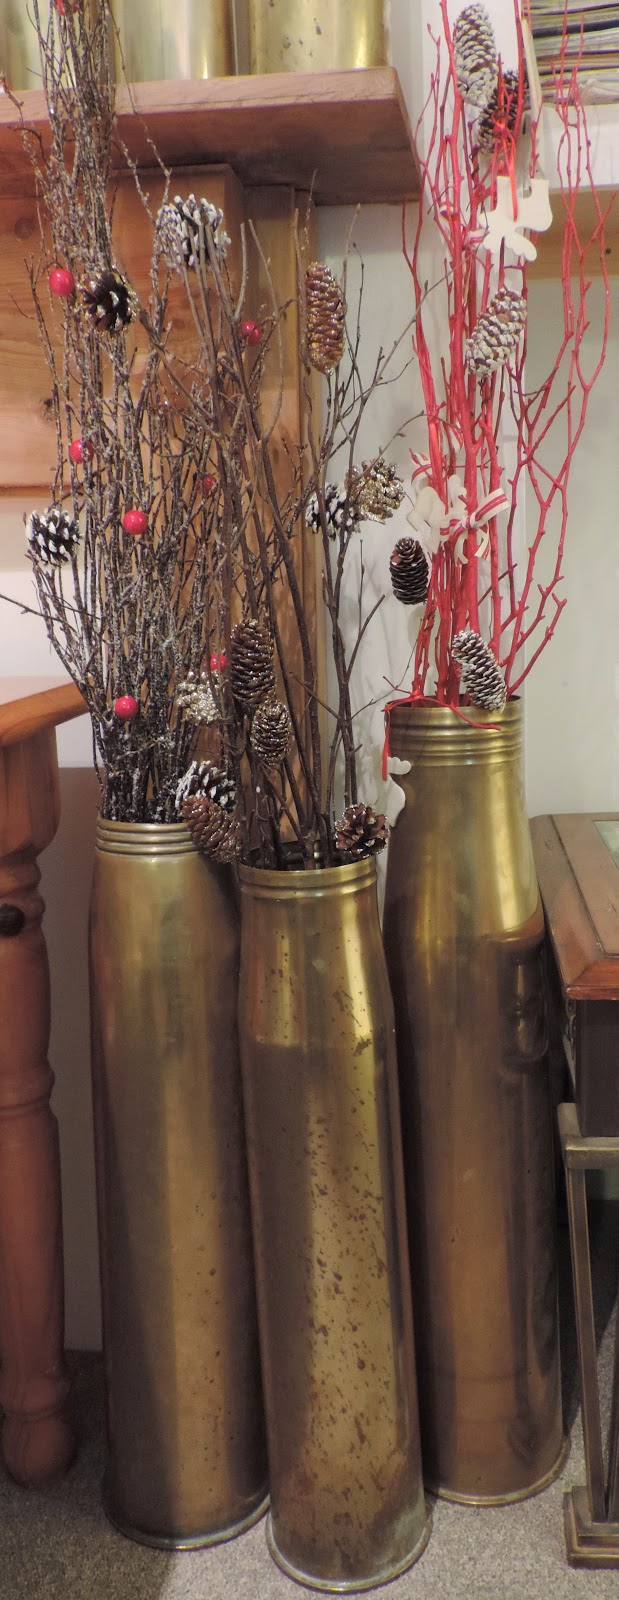 105 mm shell 4.5 inch naval shell casings